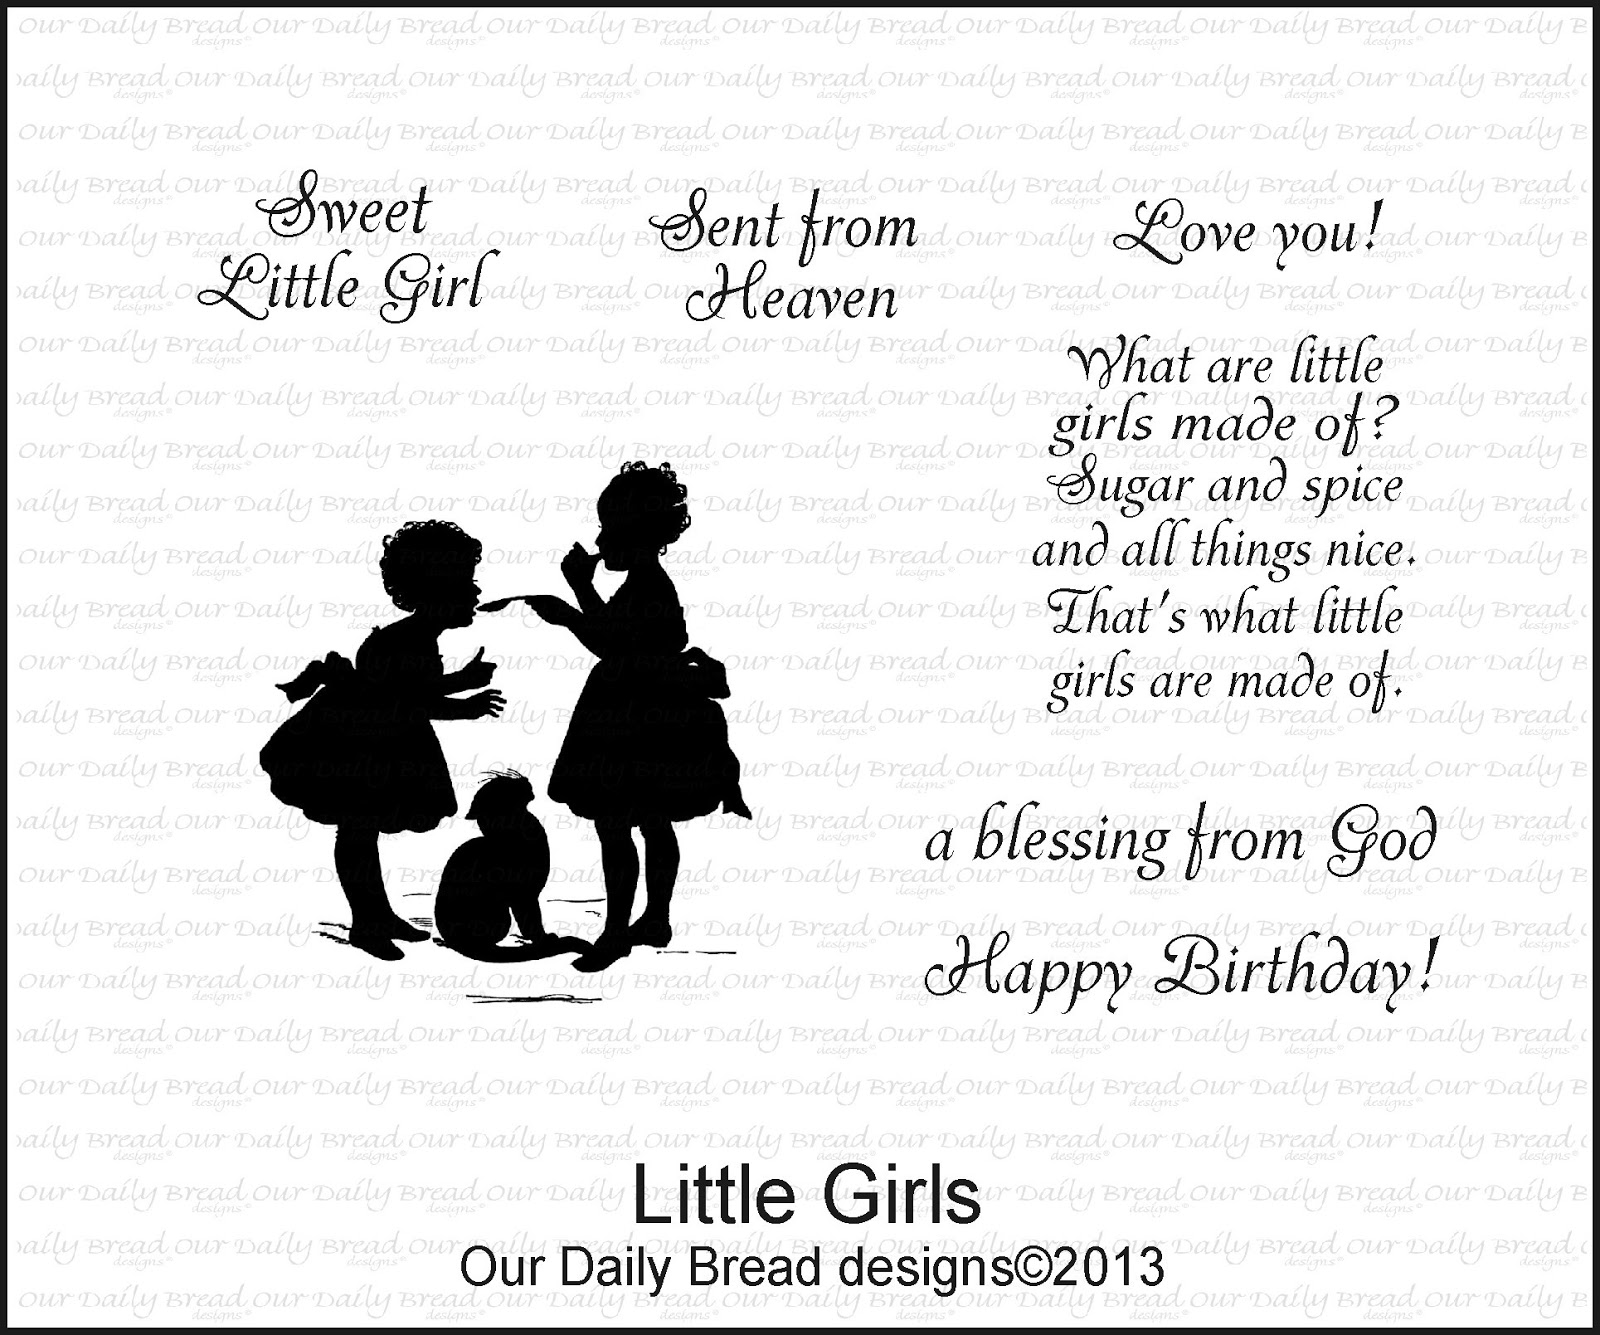 http://www.ourdailybreaddesigns.com/index.php/little-girls.html